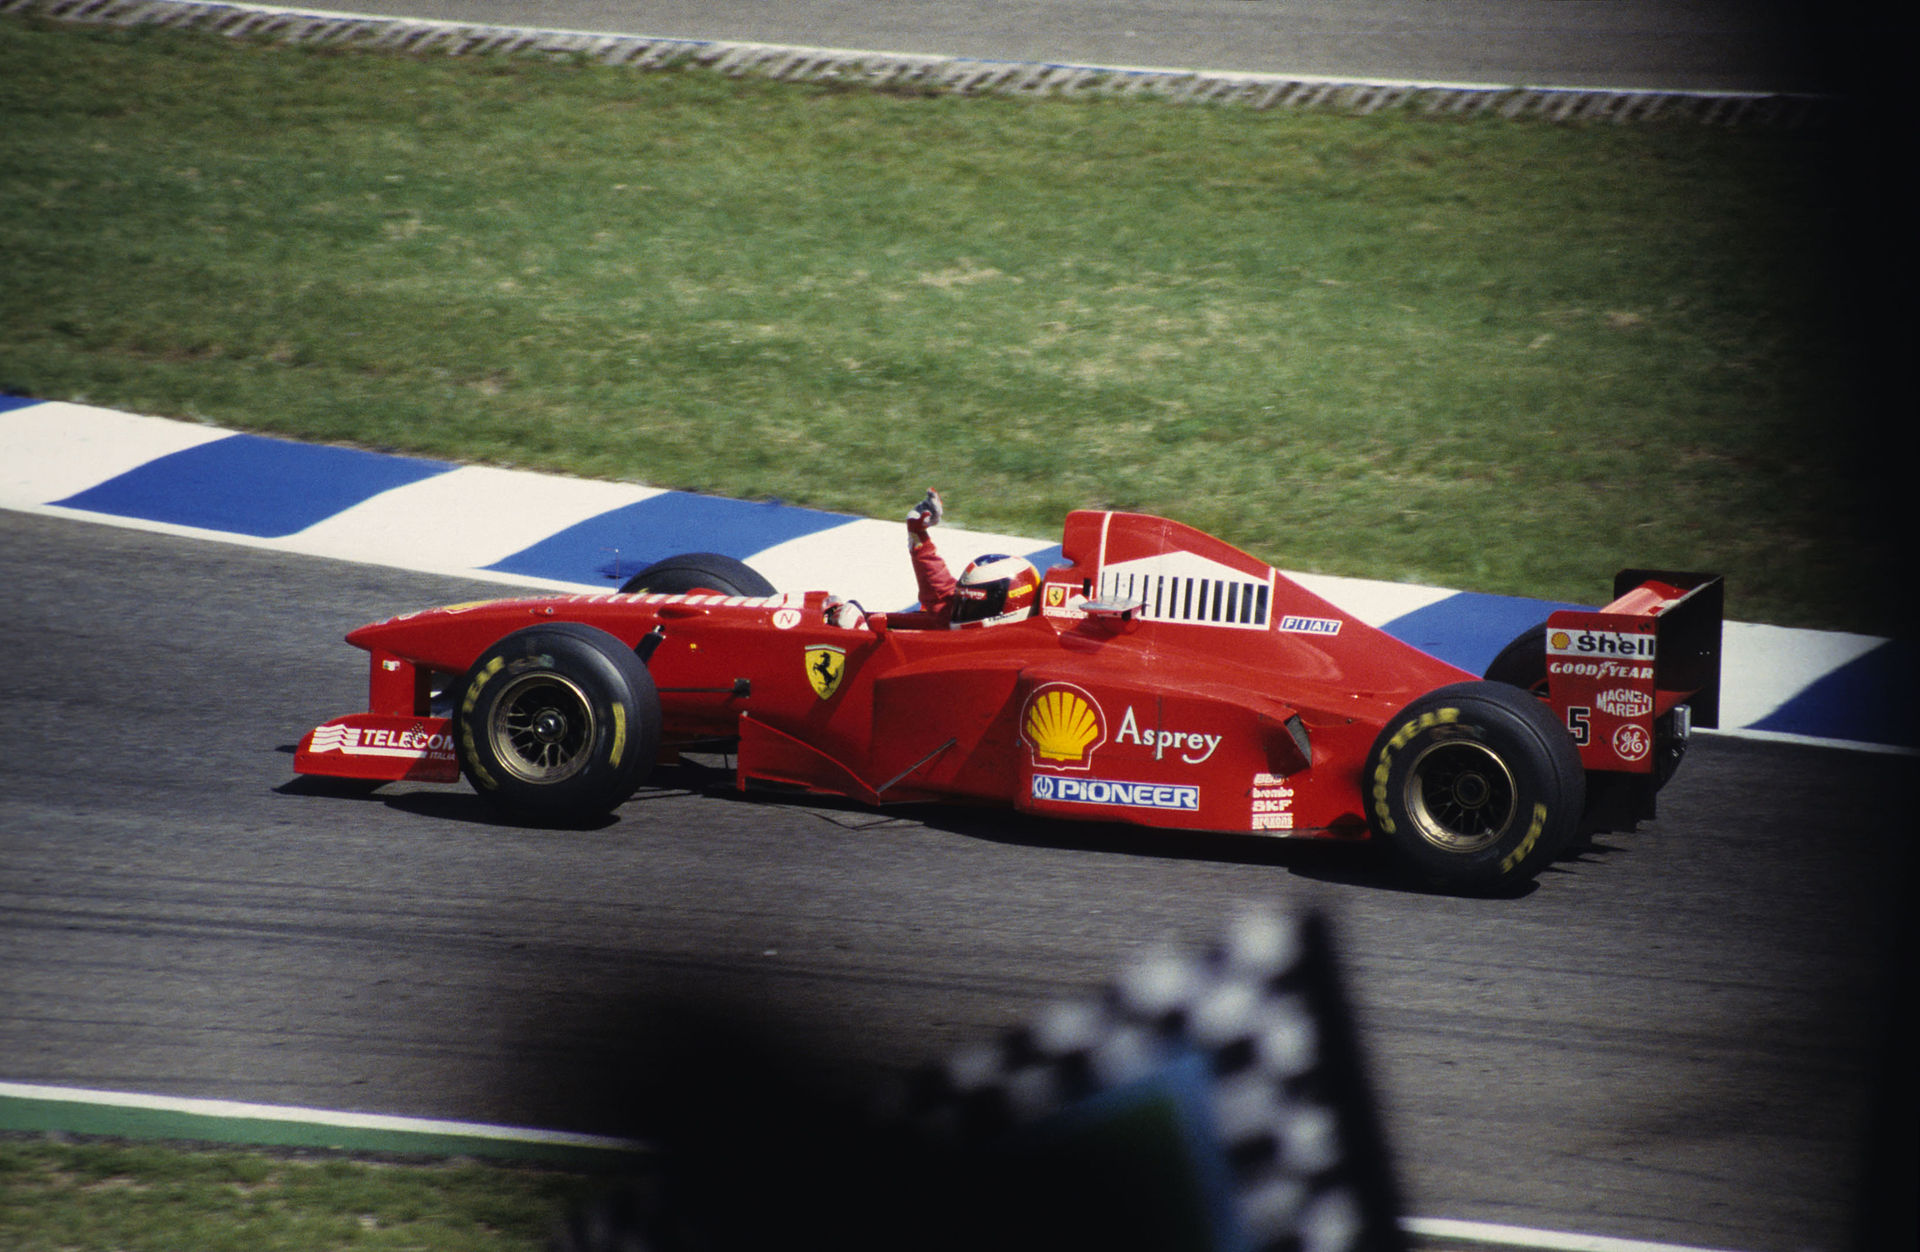 Michael_Schumacher_1997.jpg